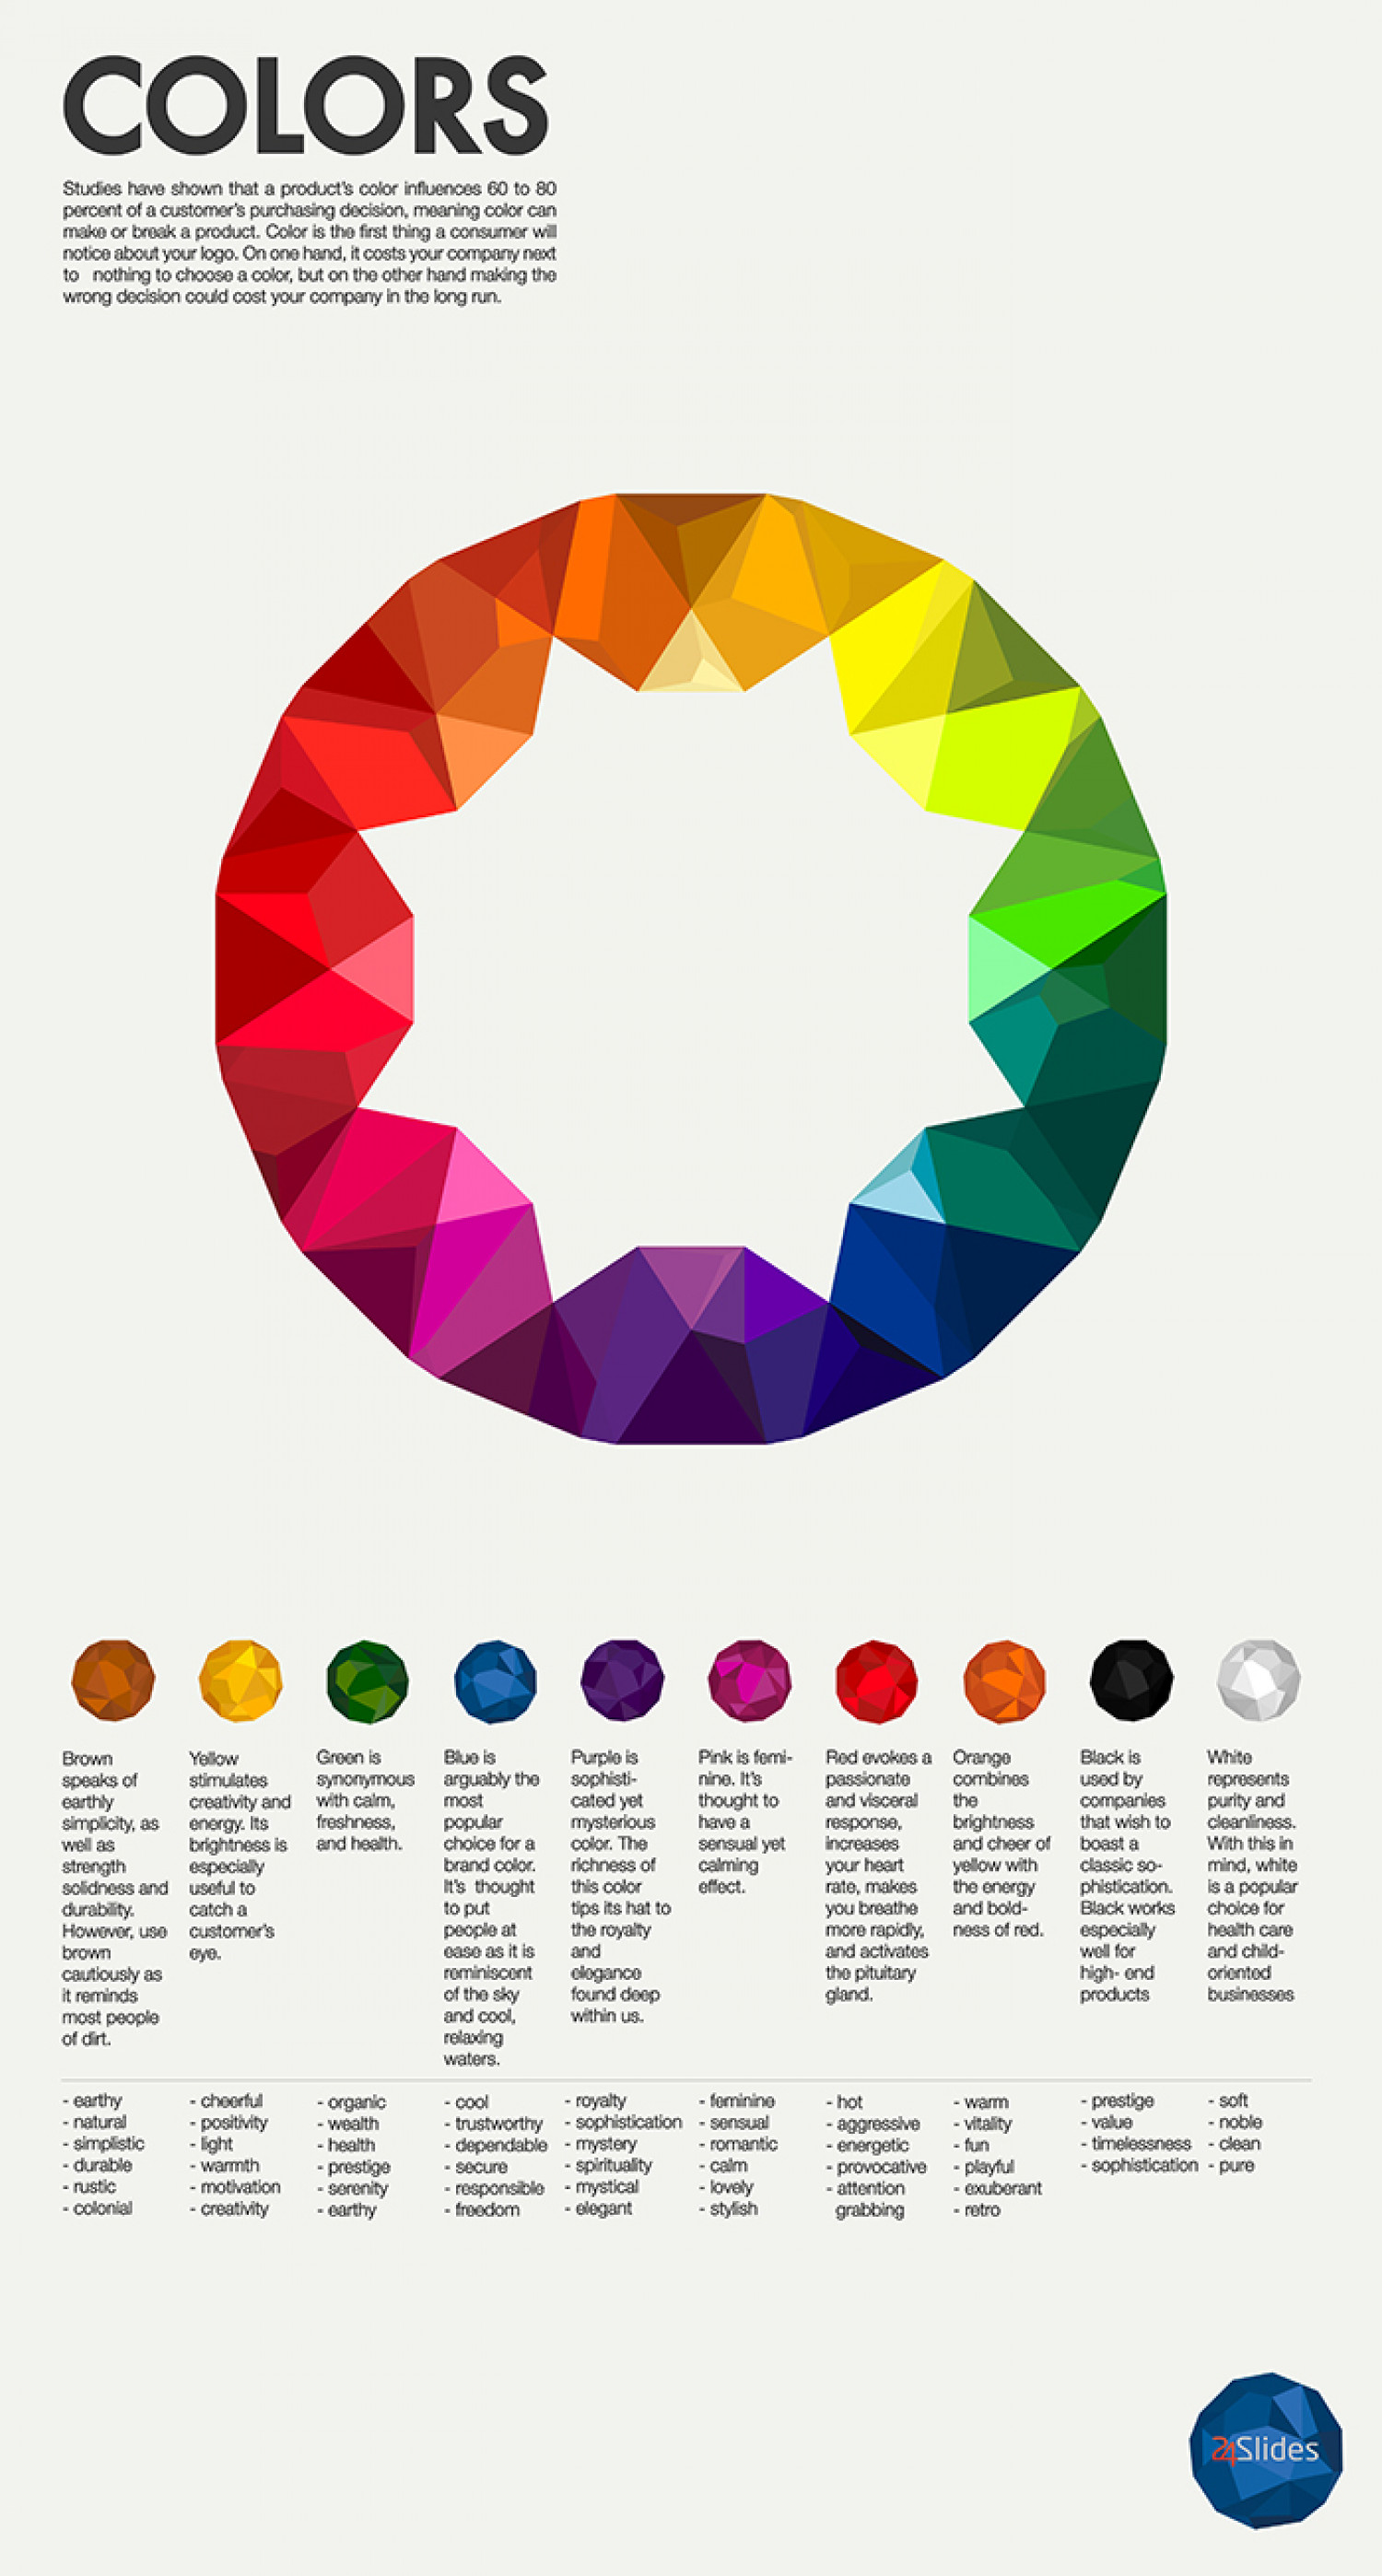 COLORS Infographic